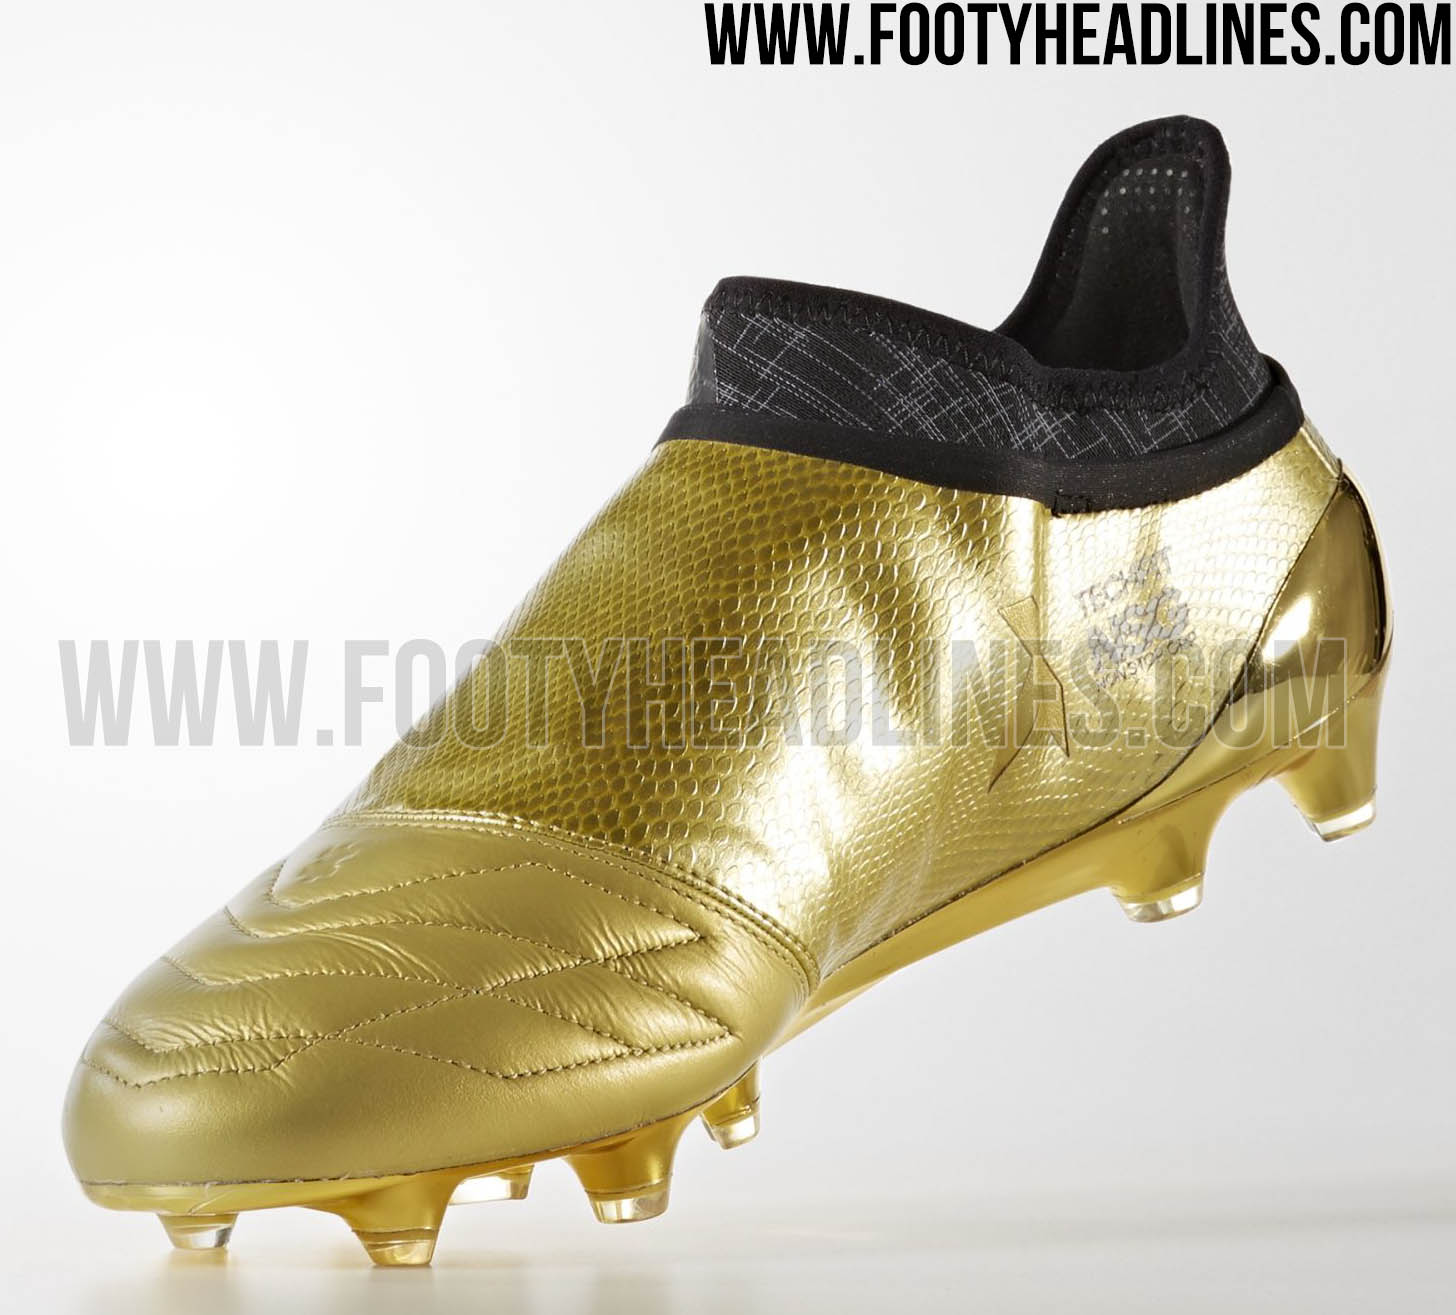 gold adidas x 16 purechaos space craft pack boots. Black Bedroom Furniture Sets. Home Design Ideas